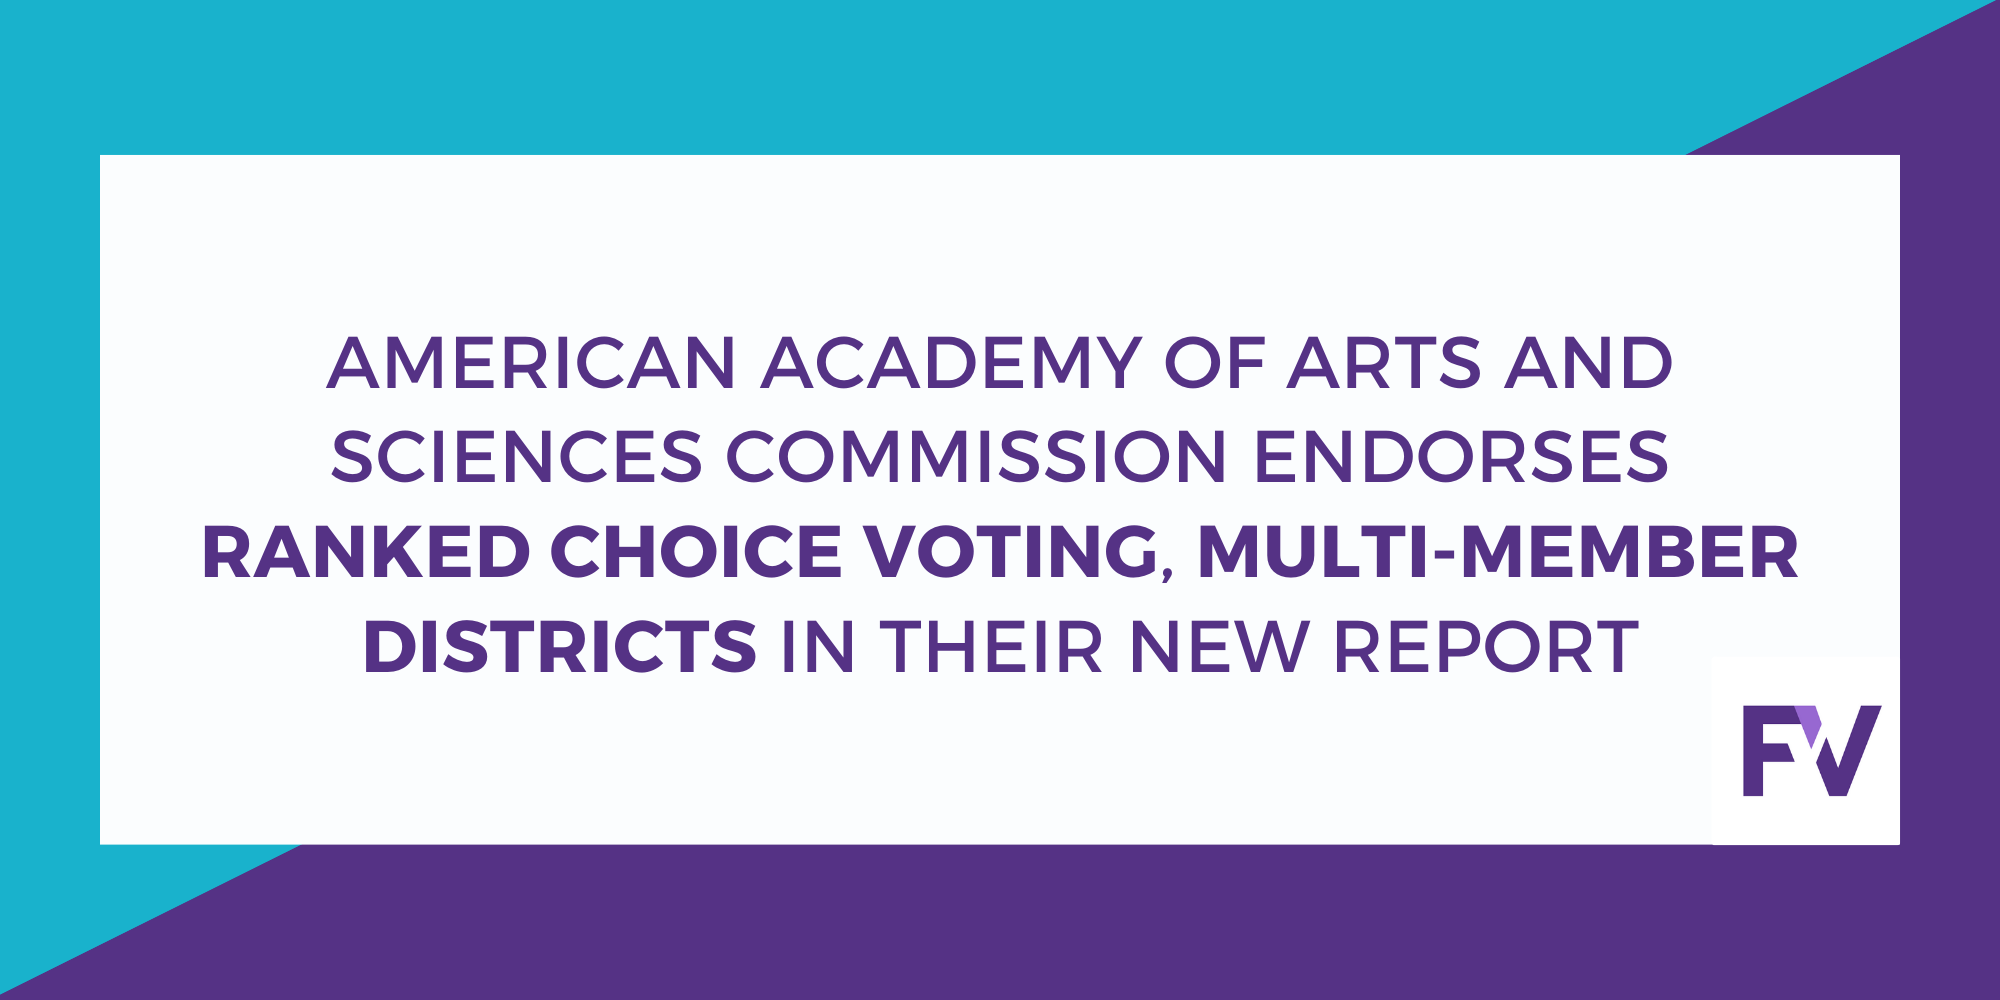 AAAS Commission Recommends Ranked Choice Voting and Proportional Representation as Top Reforms